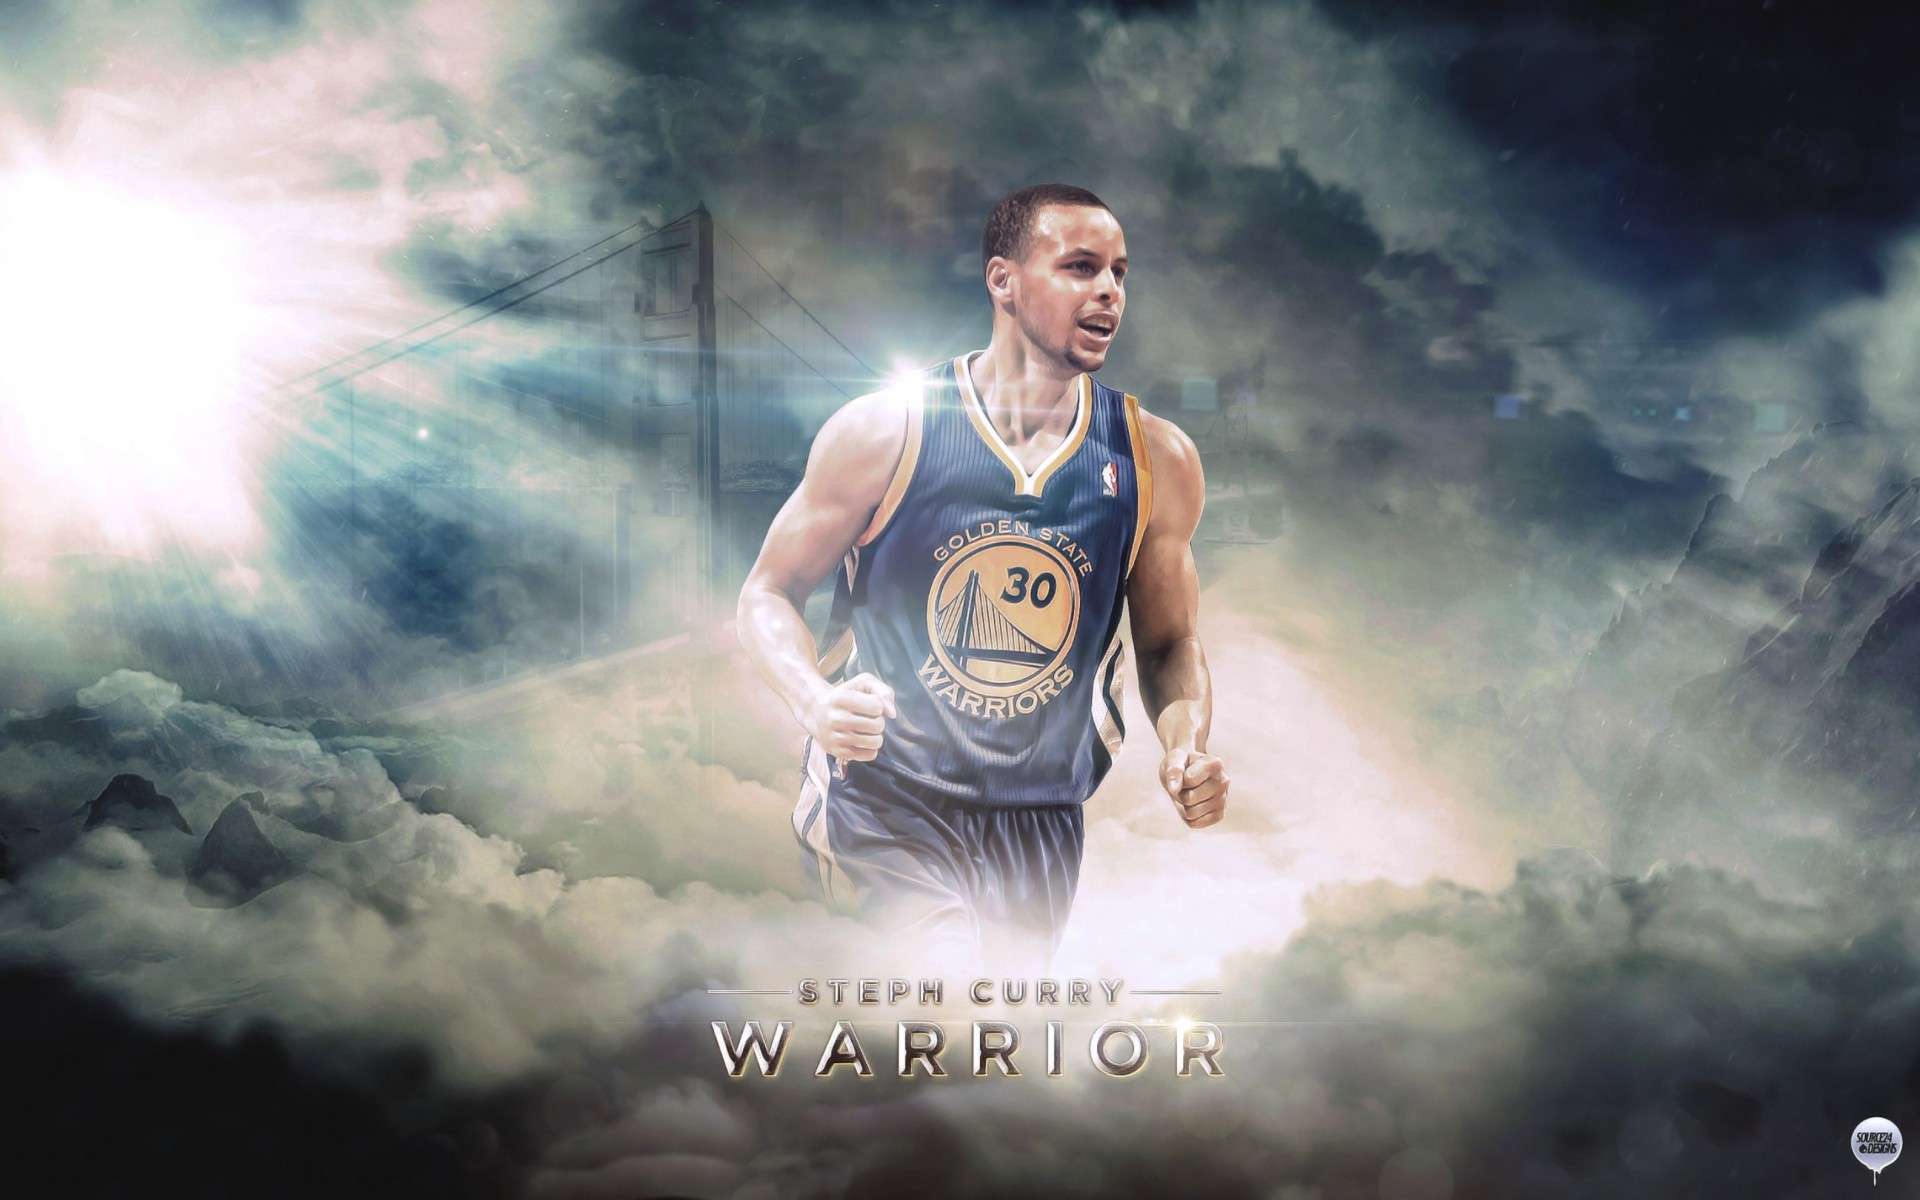 Stephen Curry Basketball Player Wide Wallpaper